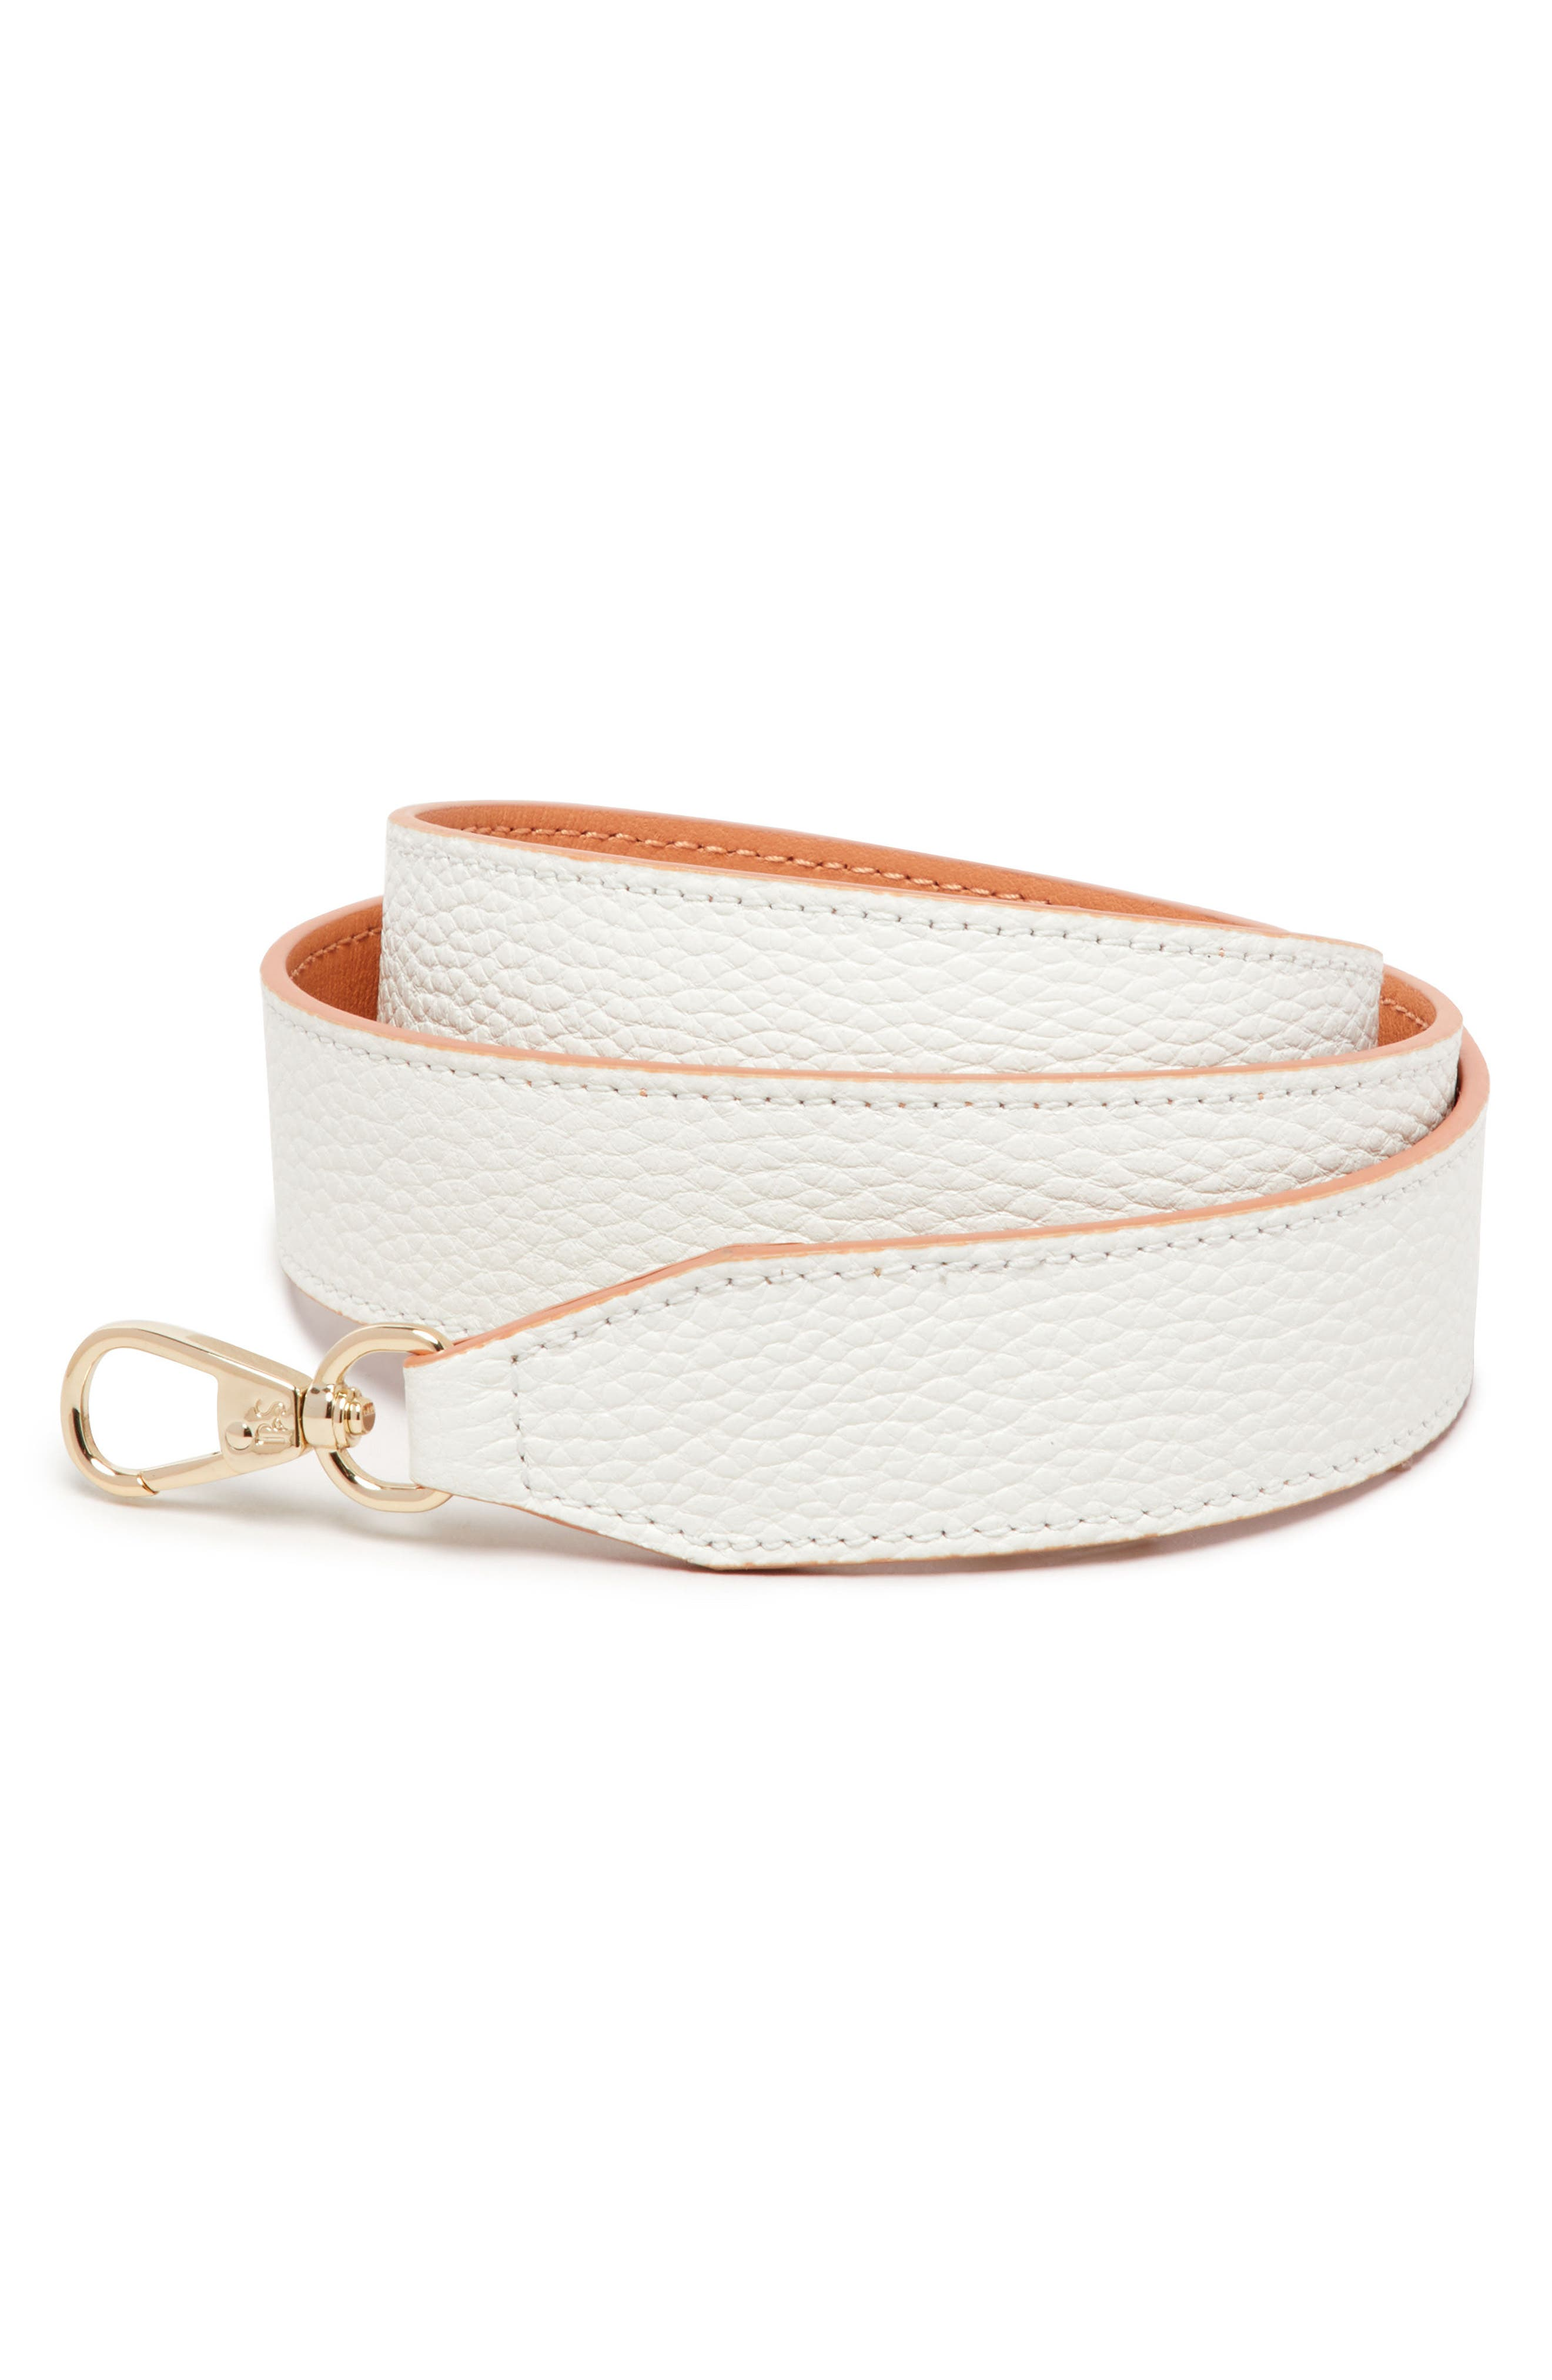 Wide Pebbled Leather Strap,                             Main thumbnail 1, color,                             Lily/ Apricot